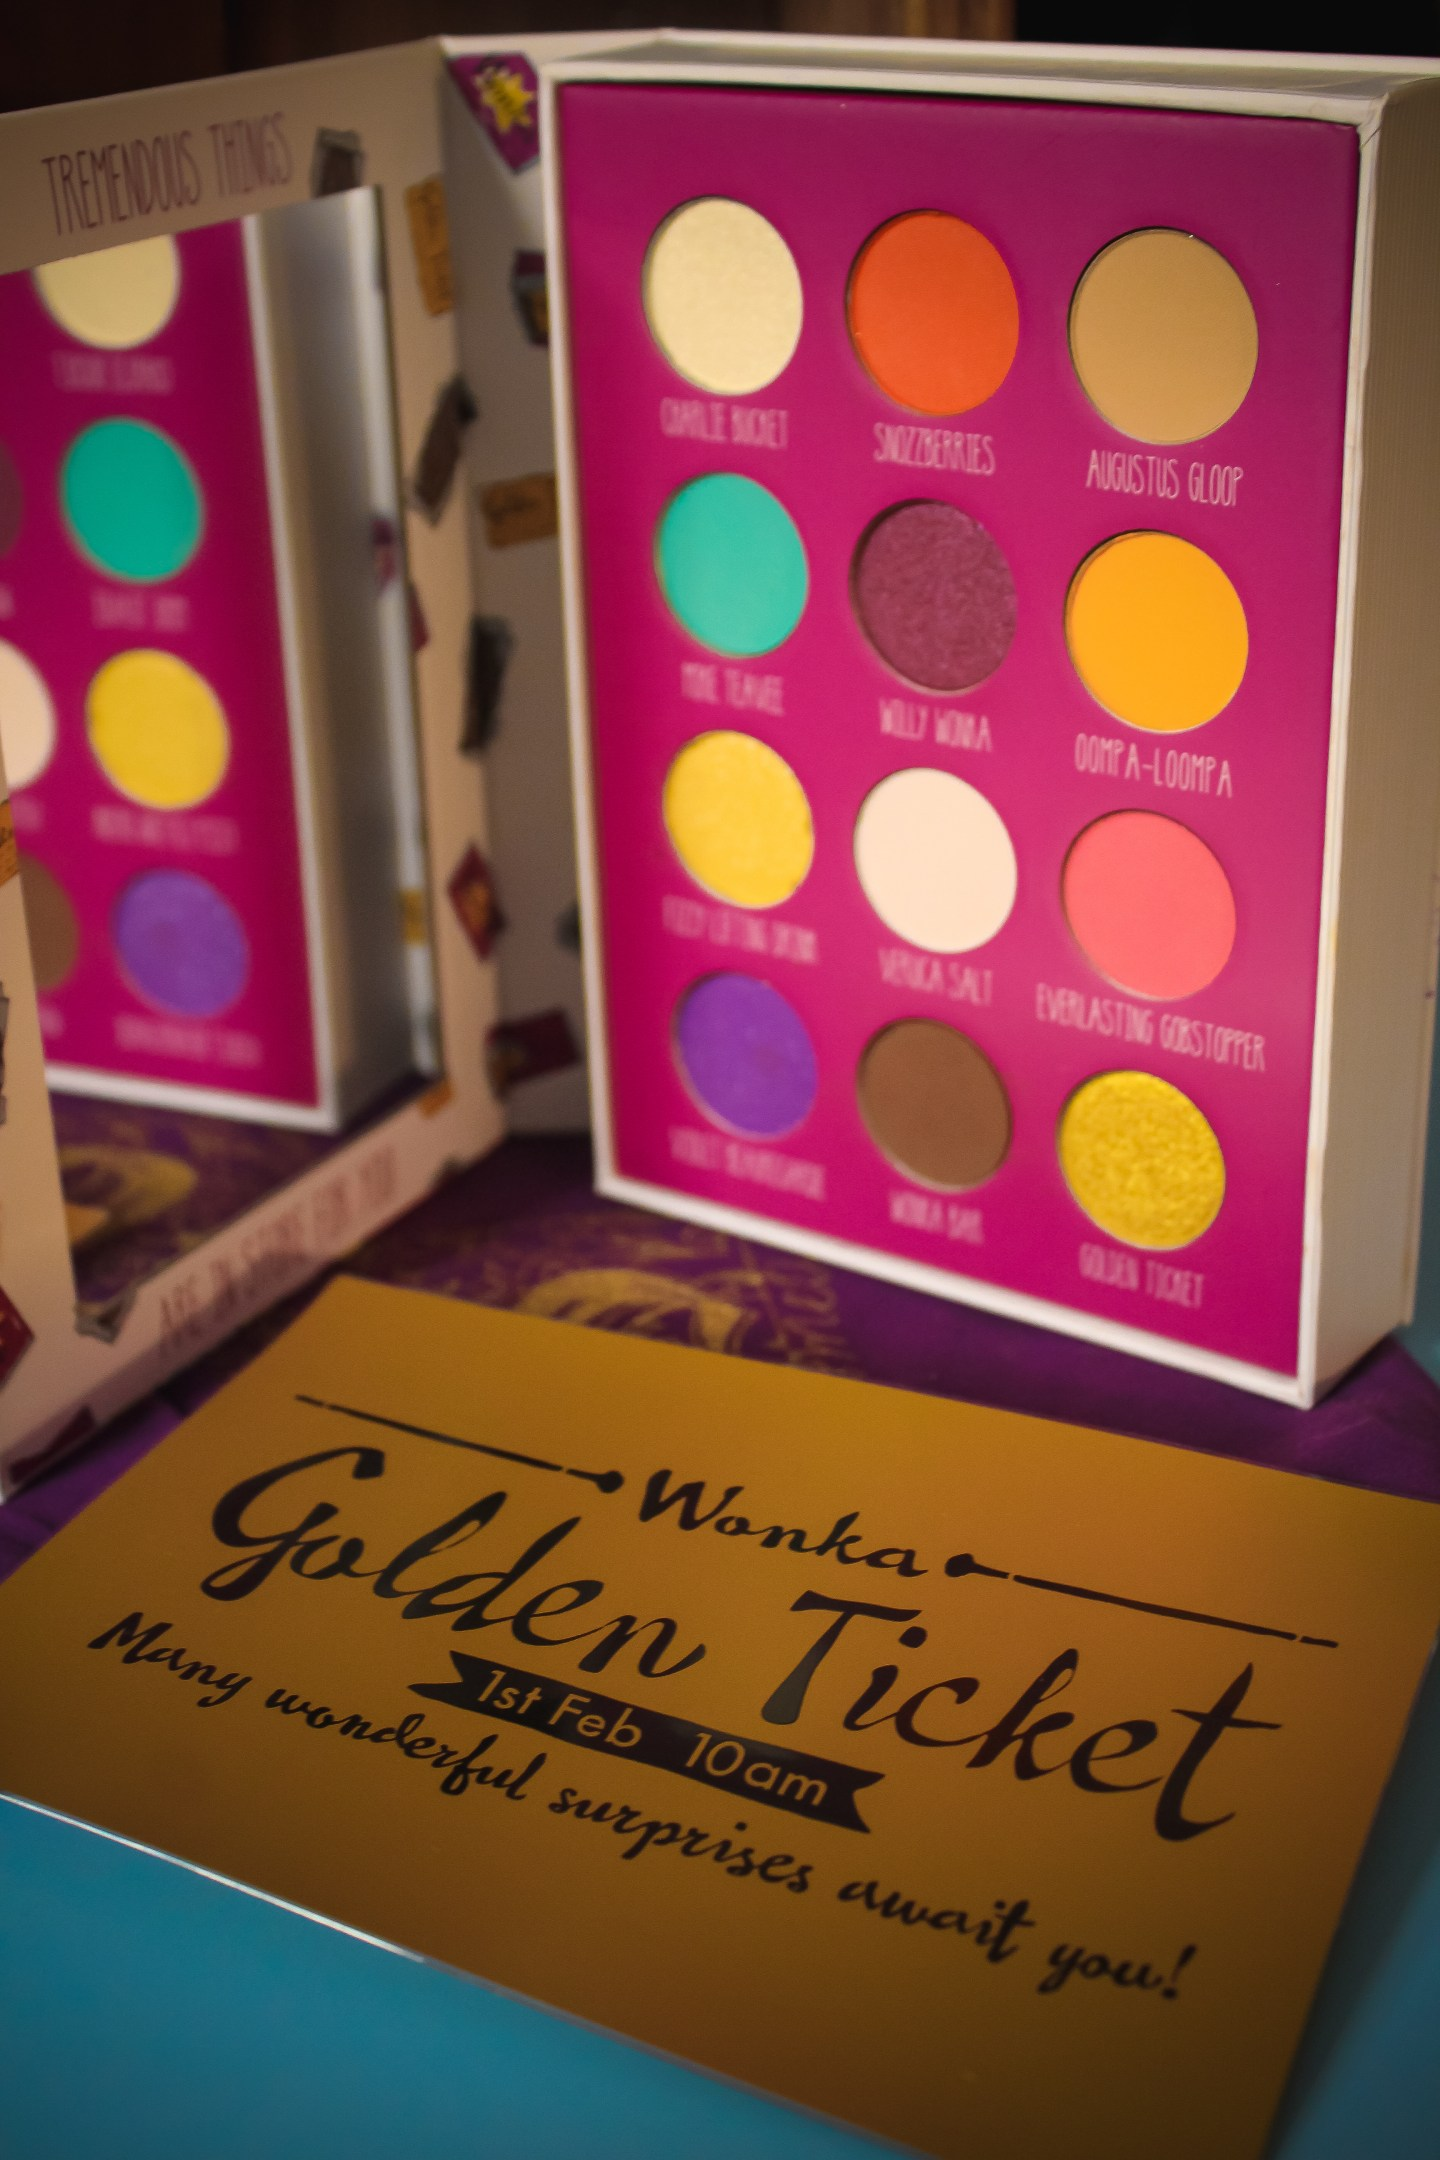 Storybook Cosmetics Charlie and the Chocolate Factory 5.jpg